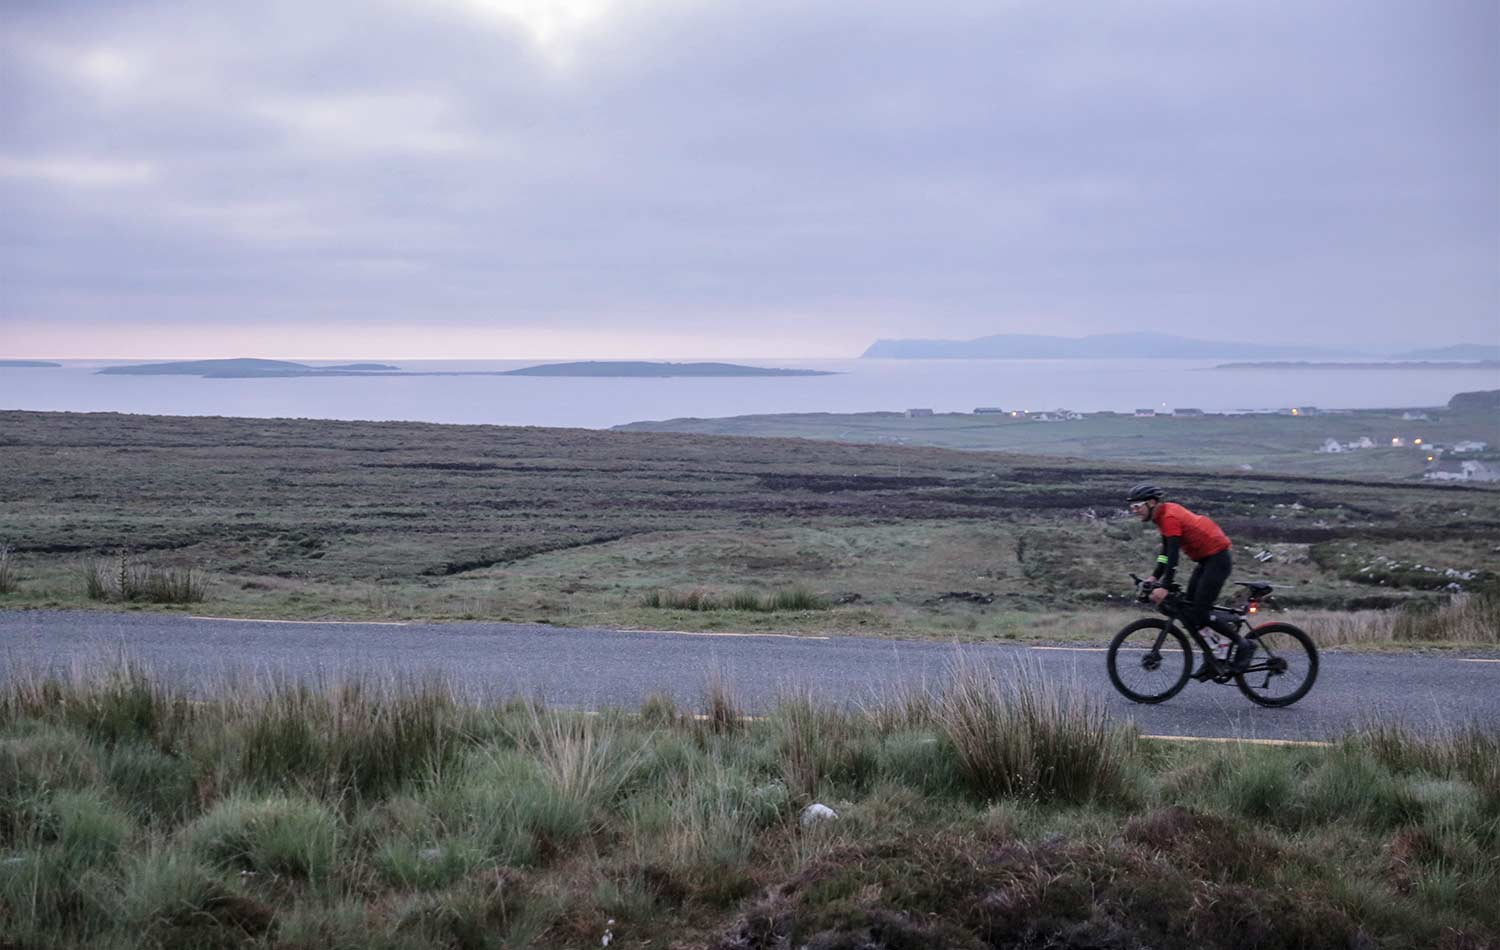 bjorn lenhard on his bike preparing the transatlantic way race